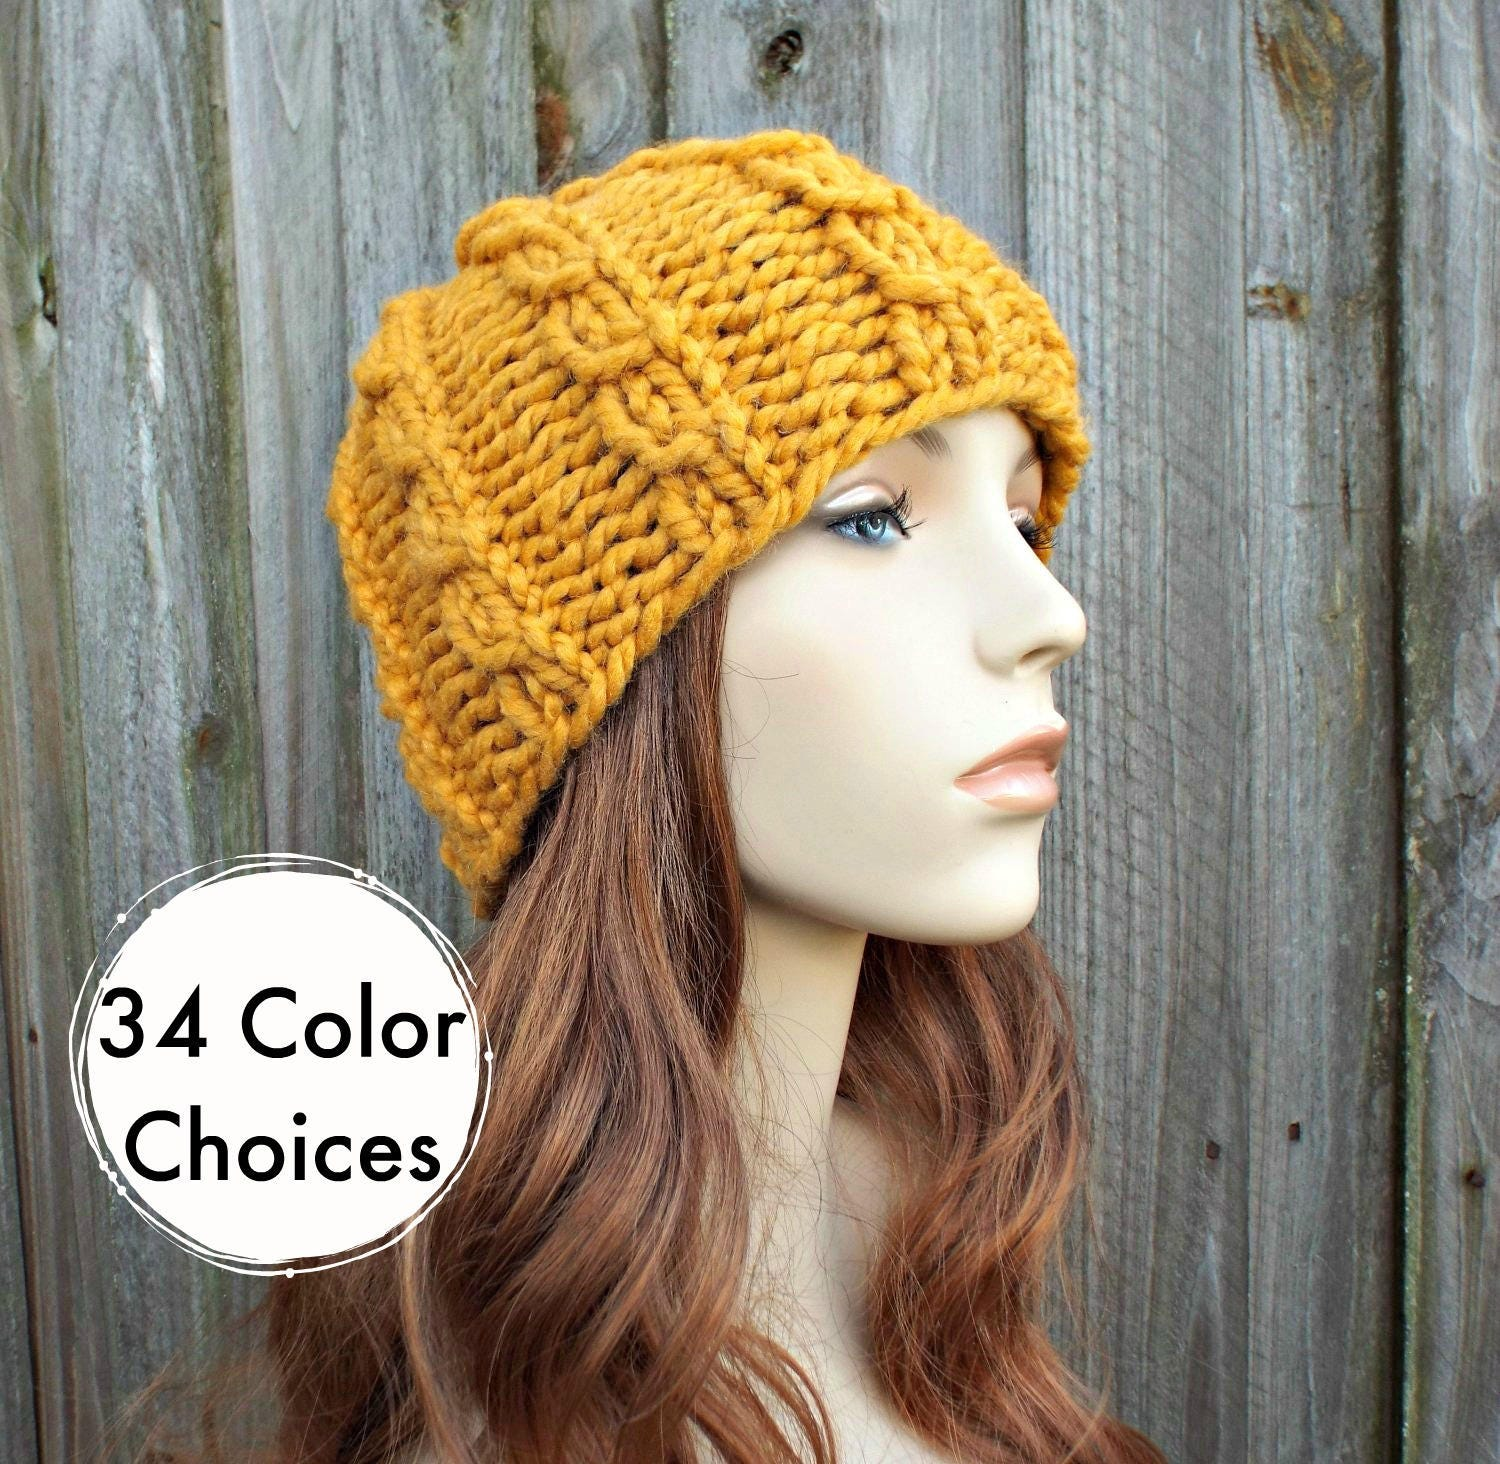 Chunky Knit Hat Mens Hat Womens Hat - Cable Beanie in Yellow Mustard Knit  Hat - Mustard Hat Mustard Beanie Winter Hat a58e29c37b7